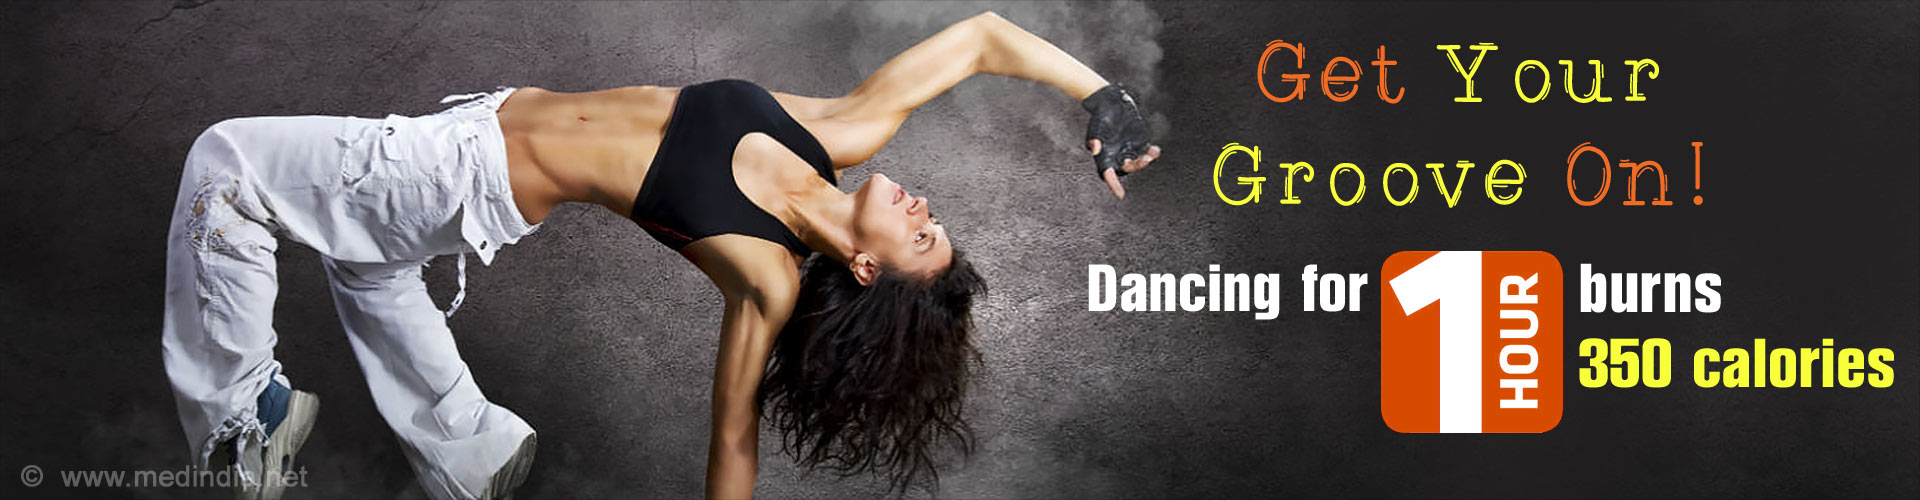 Get Your Groove On! Dancing for 1 hour burns 350 calories